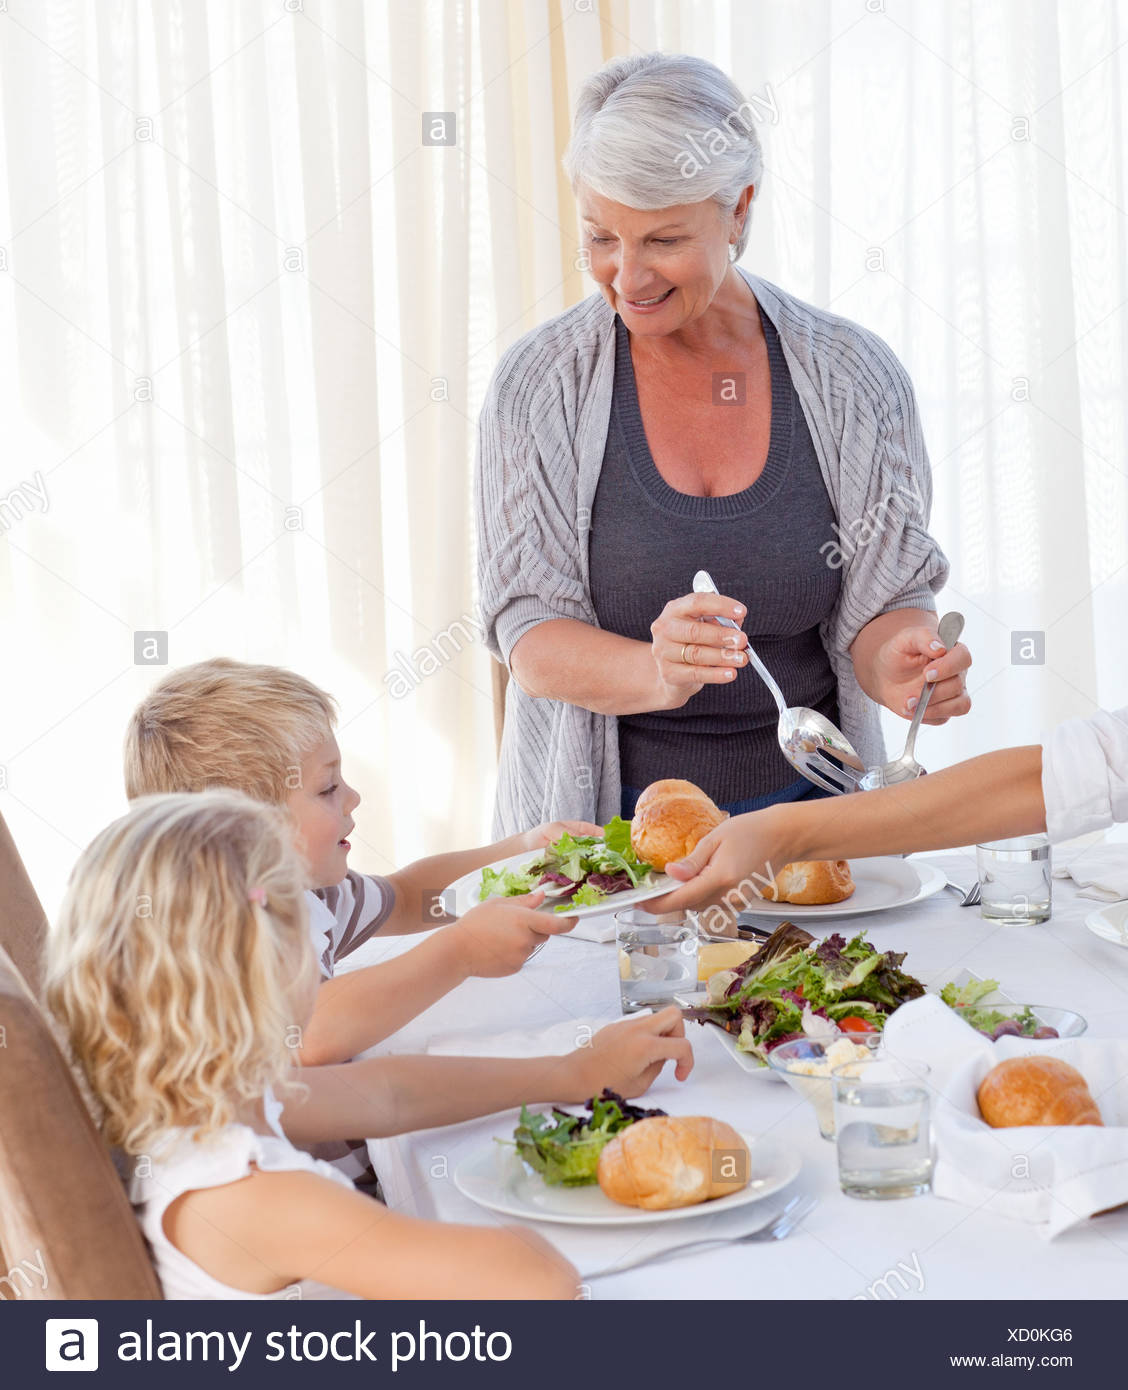 Grandmother giving other family members some food during the meal - Stock Image